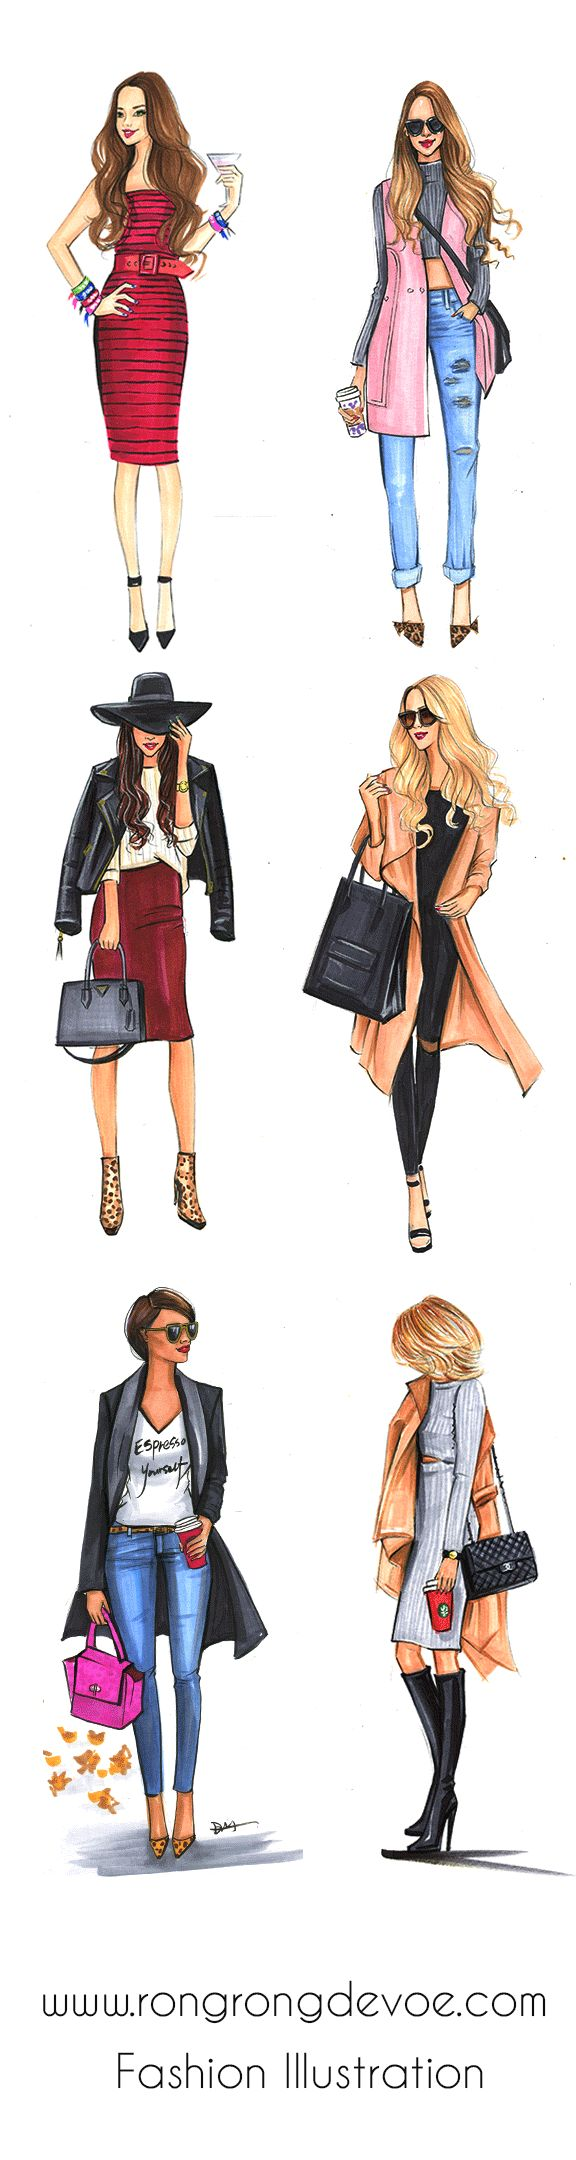 Fashion illustrations of street style fashionistas by Houston fashion illustrator Rongrong DeVoe, more fashion sketches on www.rongrongdevoe.com